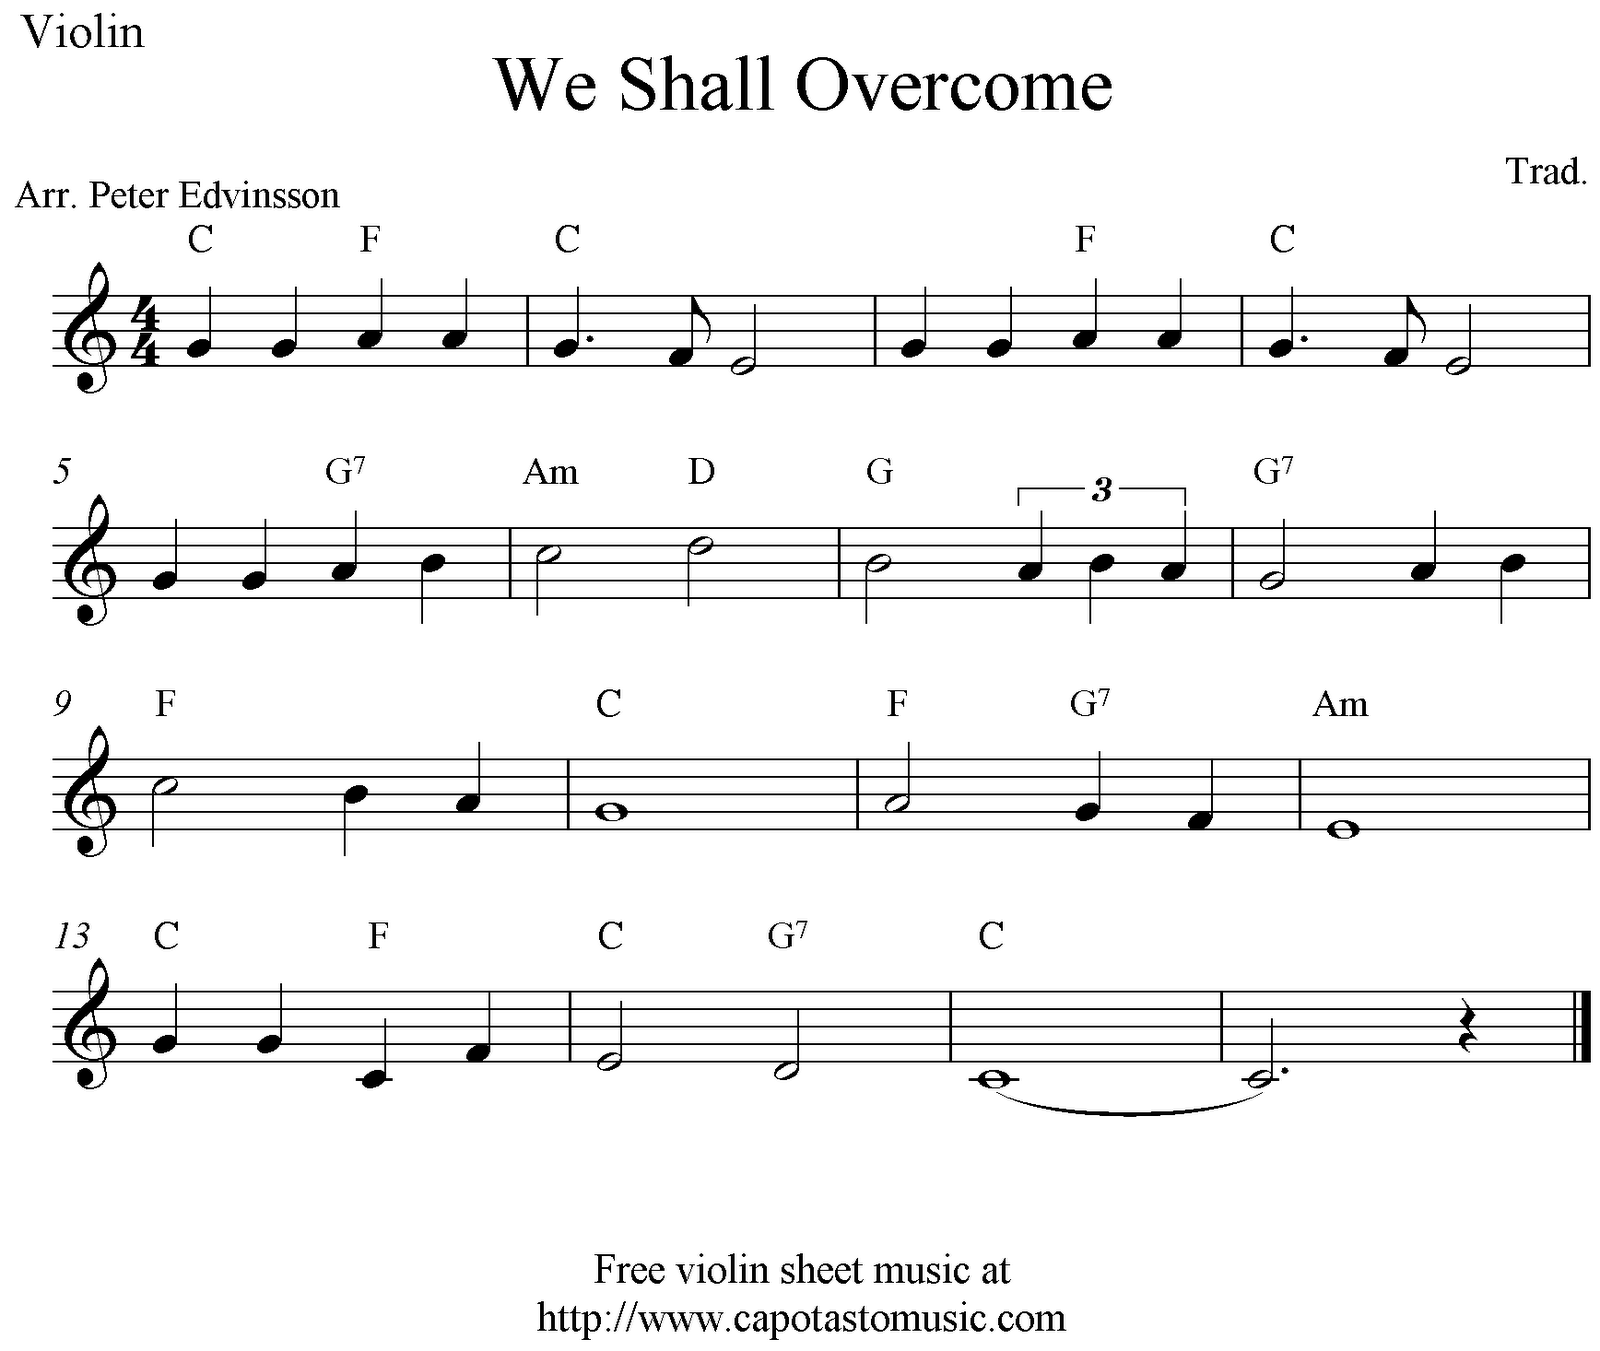 Free sheet music scores we shall overcome free violin sheet free sheet music scores we shall overcome free violin sheet music notes hexwebz Image collections